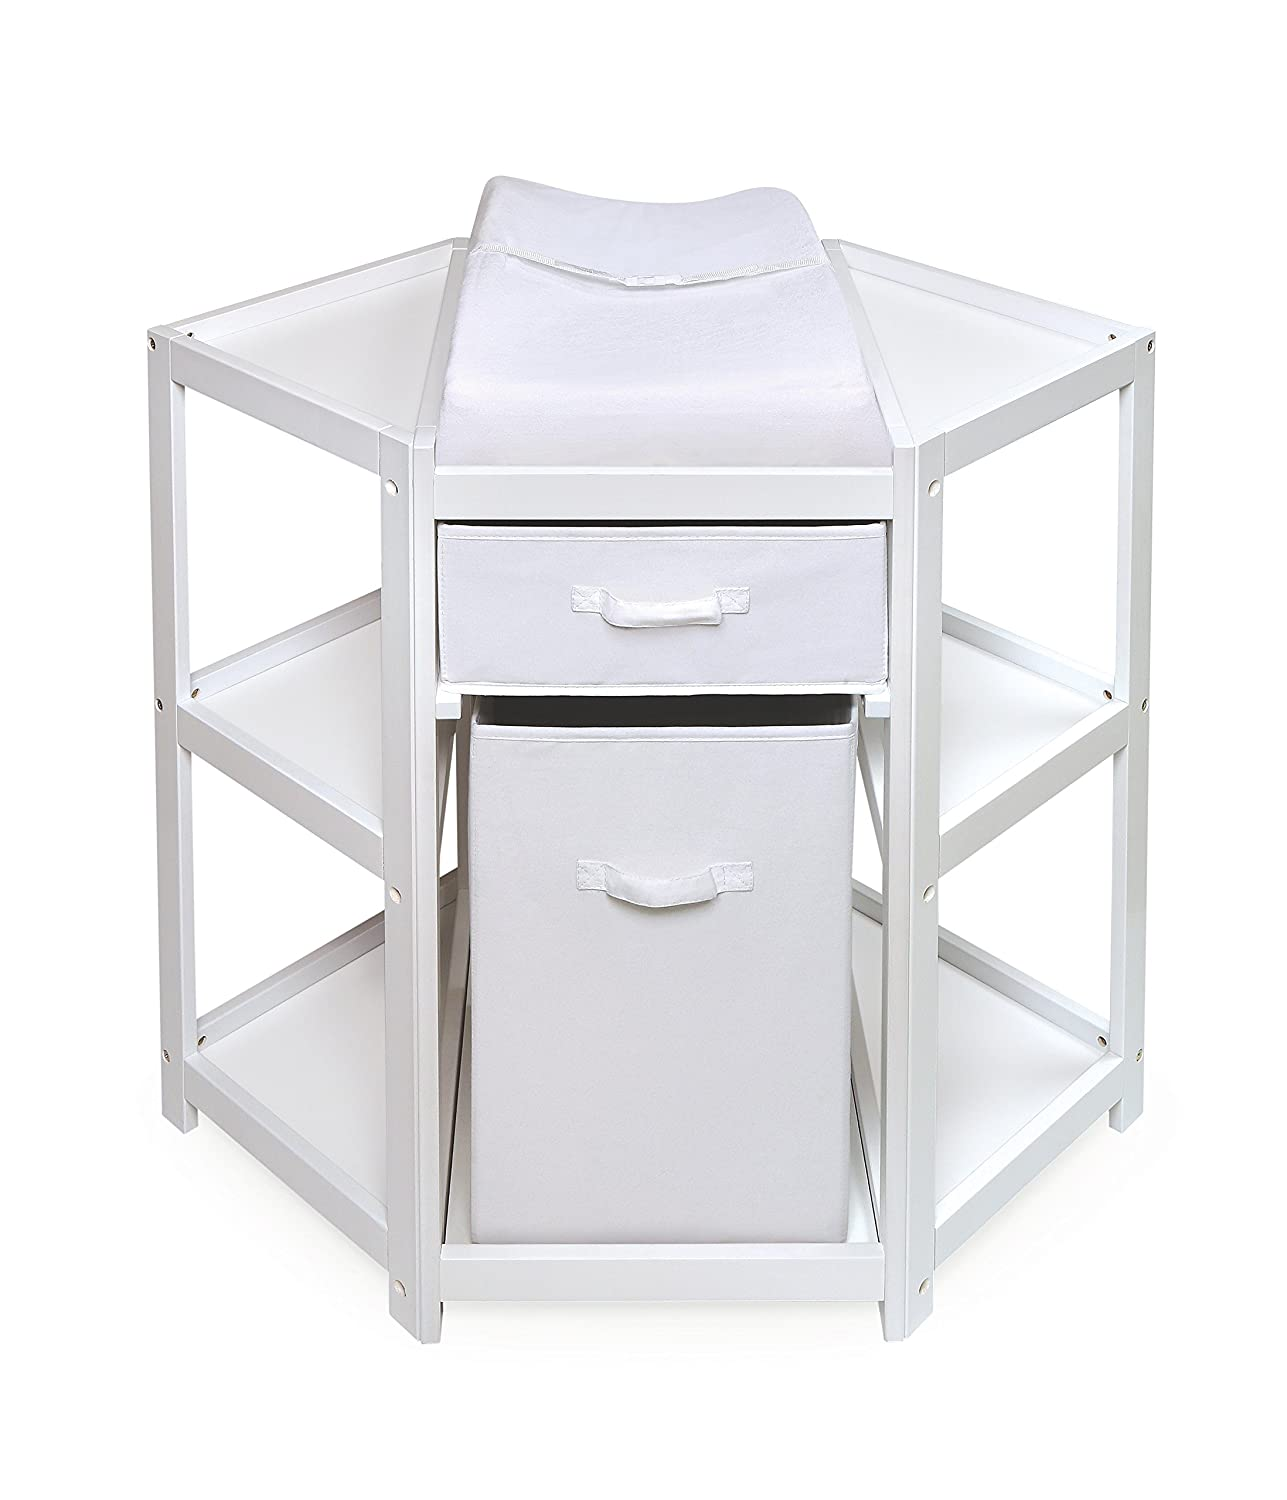 Amazon.com : Badger Basket Diaper Corner Baby Changing Table With Hamper/ Basket, White : Baby